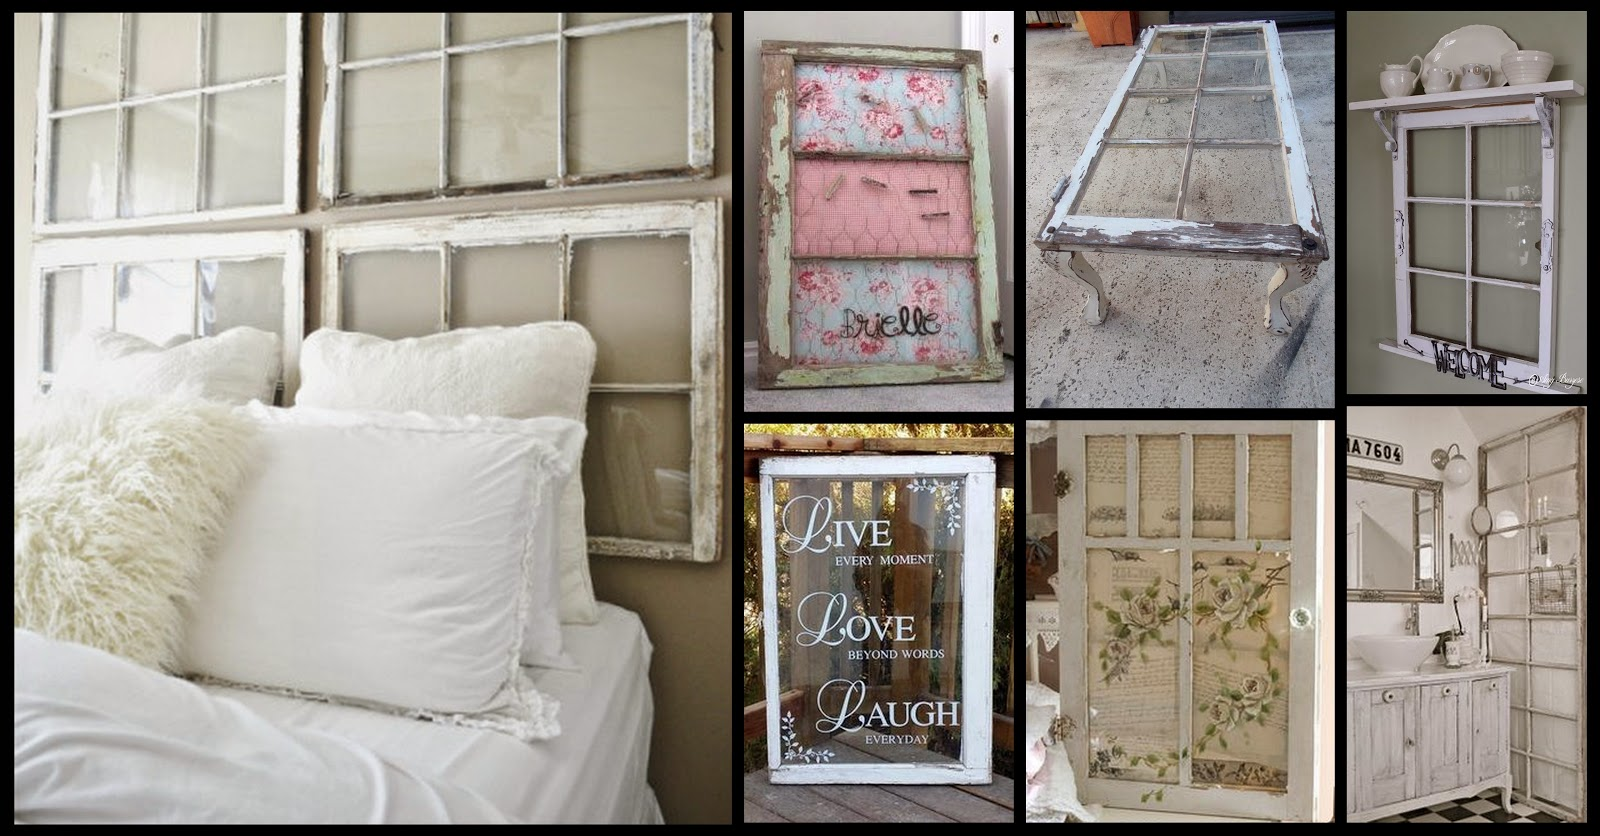 Reclaimed, upcycled, repurposed, vintage windows - Oklahoma City Craigslist Garage Sales